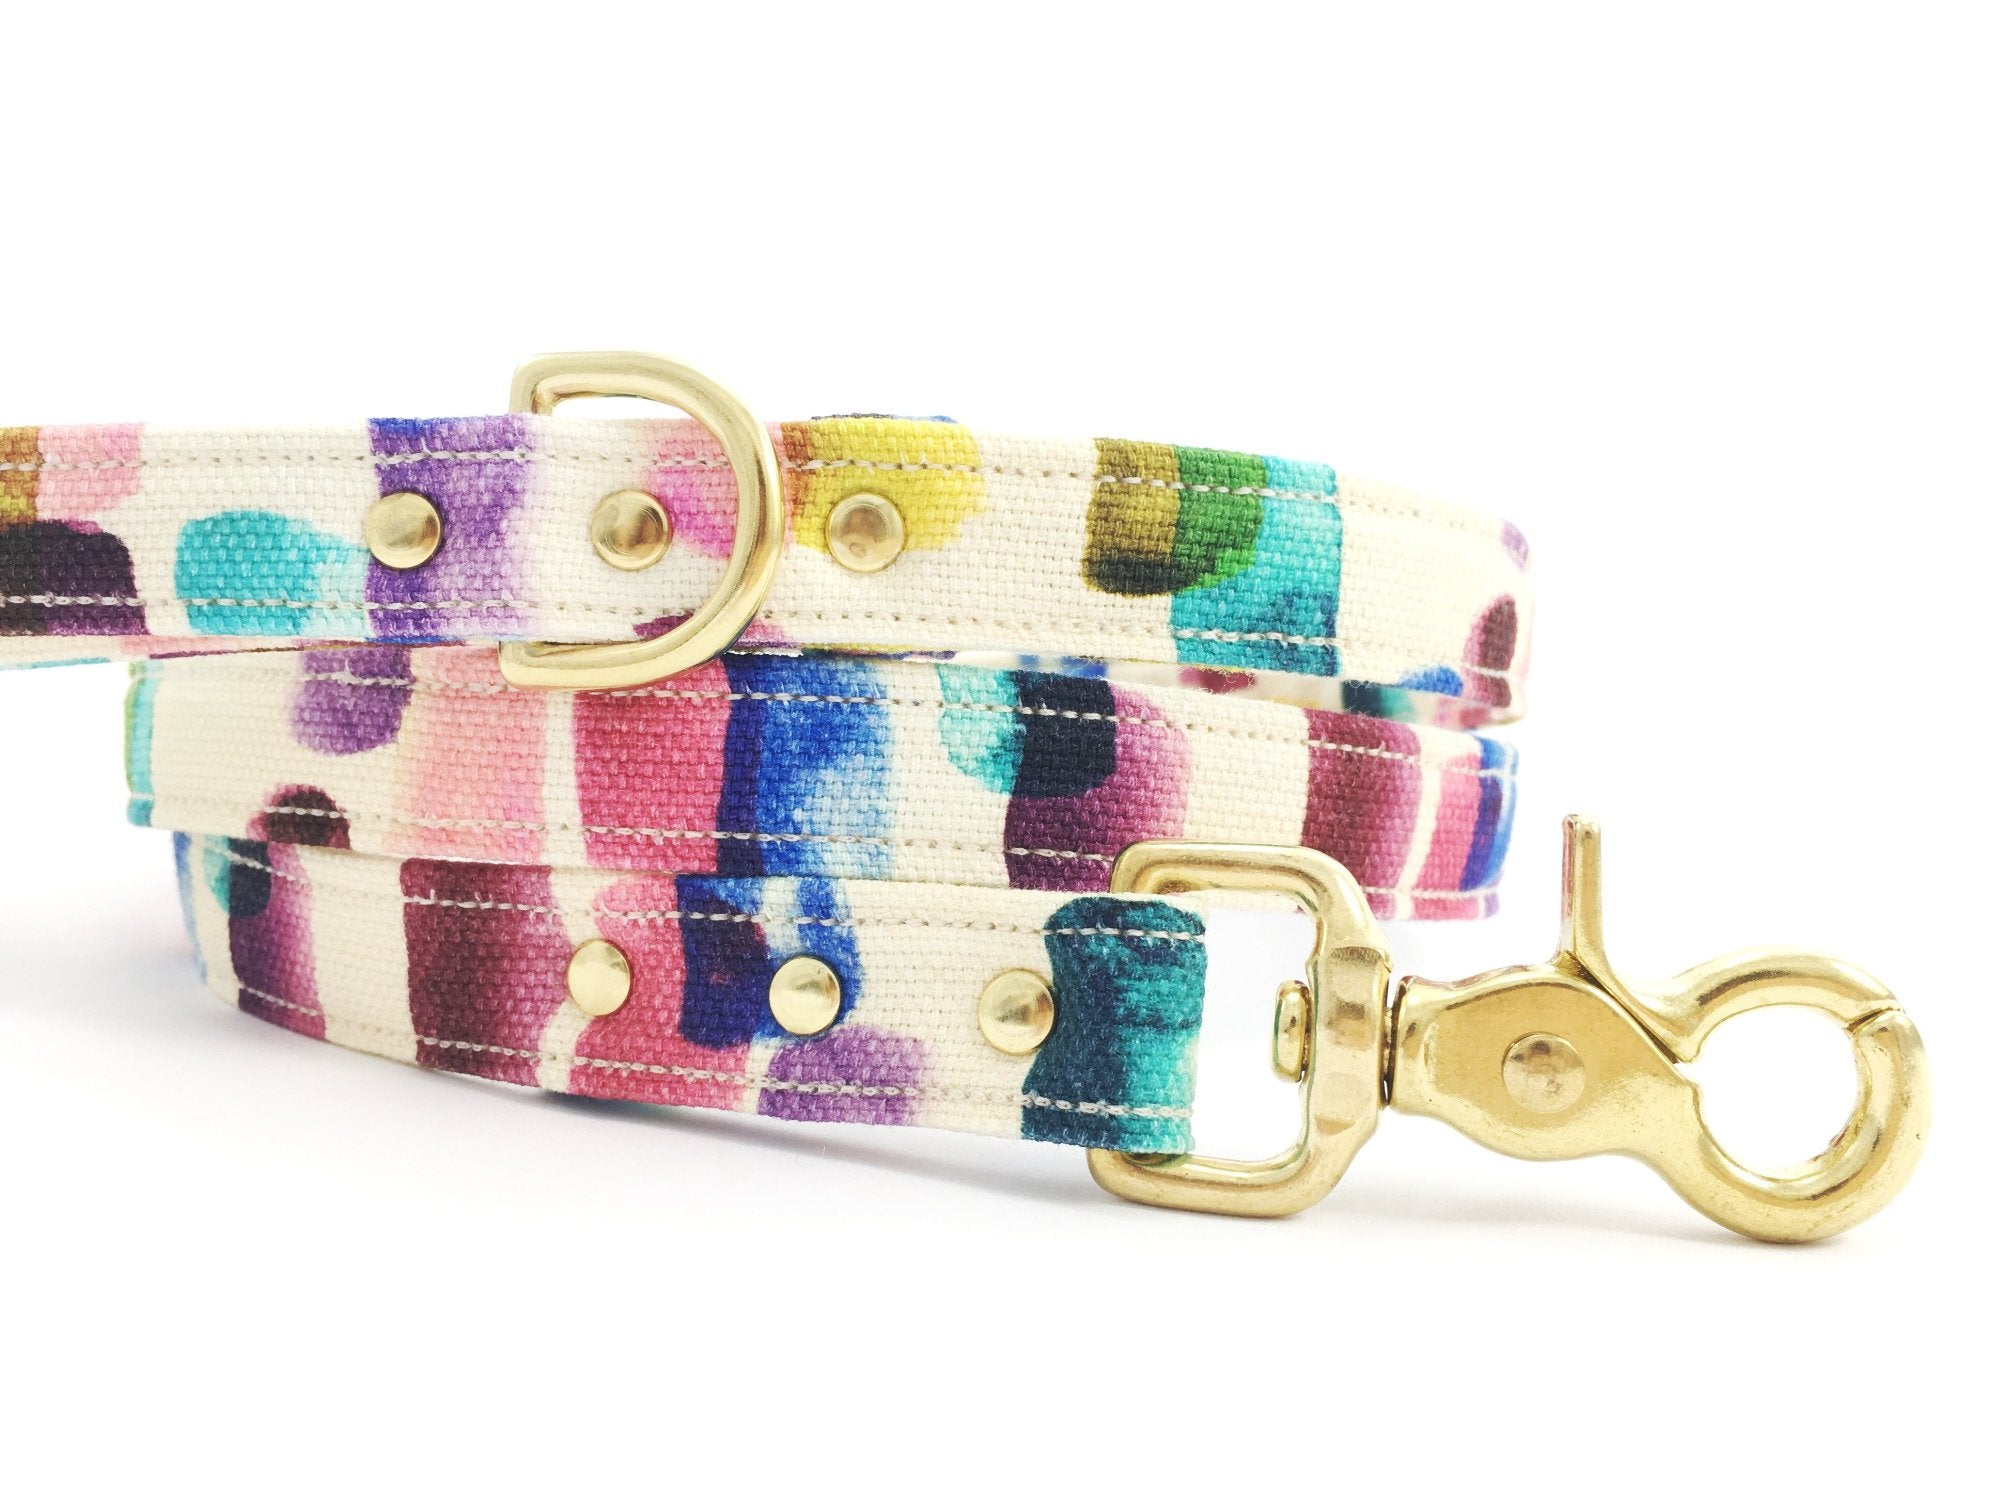 luxury cotton dog lead in blue, green, purple, yellow, pink and turquoise fabric with solid brass trigger snap hook, d ring and rivets, by Noggins & Binkles